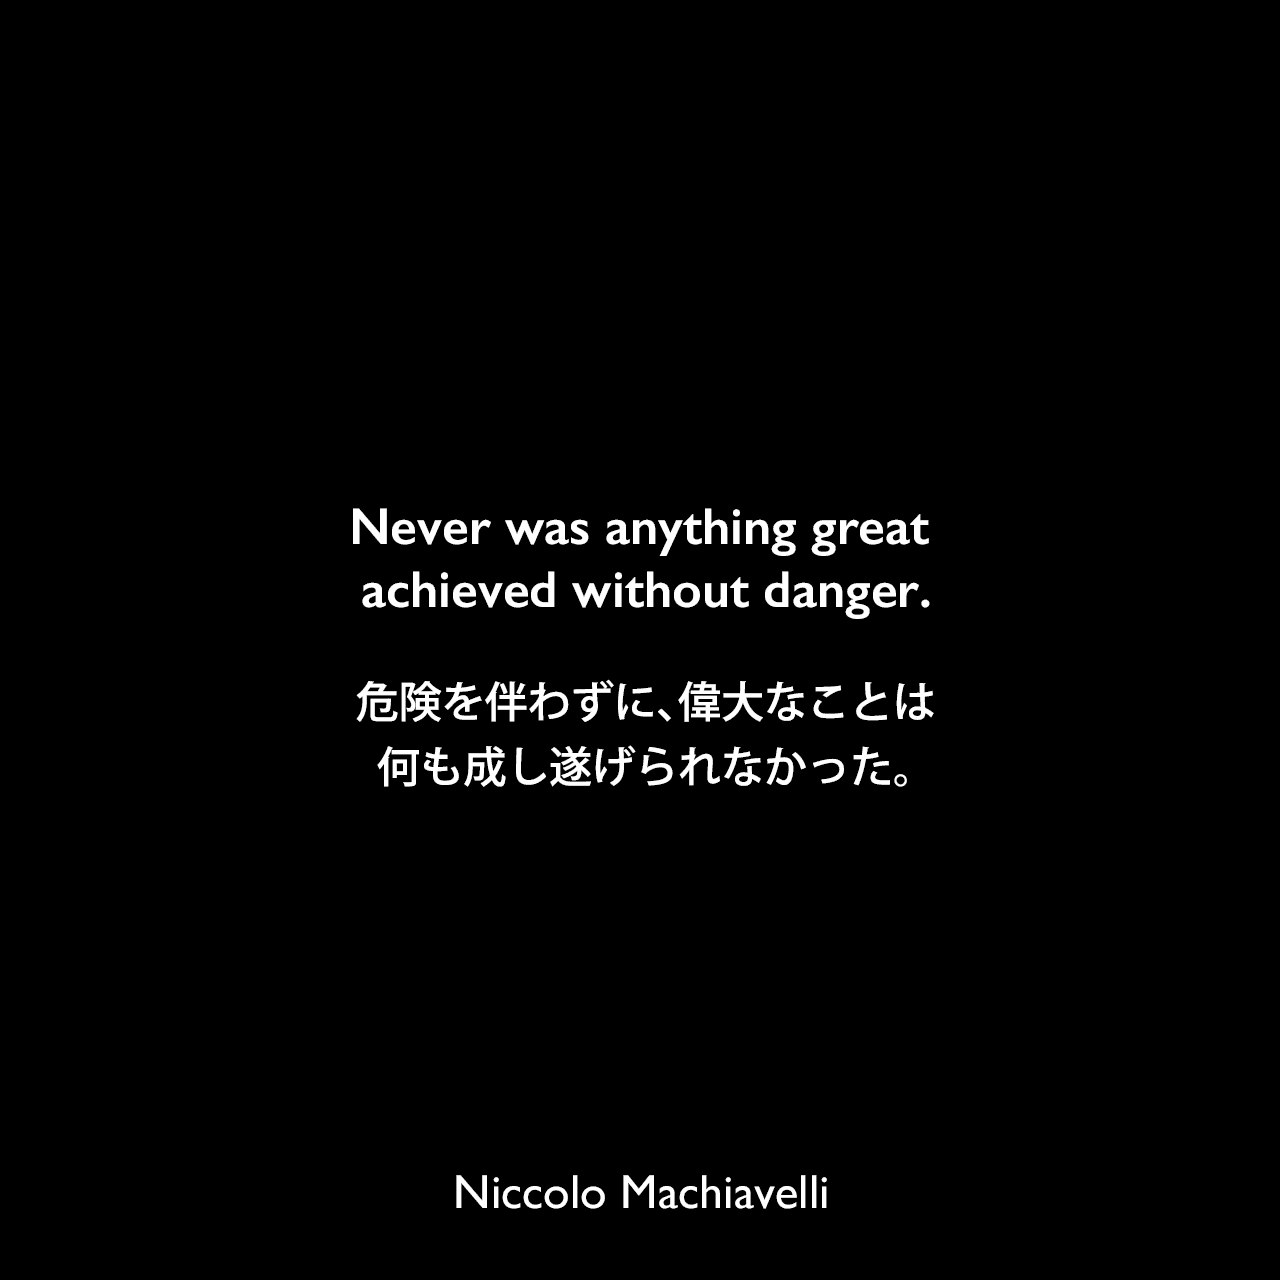 Never was anything great achieved without danger.危険を伴わずに、偉大なことは何も成し遂げられなかった。Niccolo Machiavelli